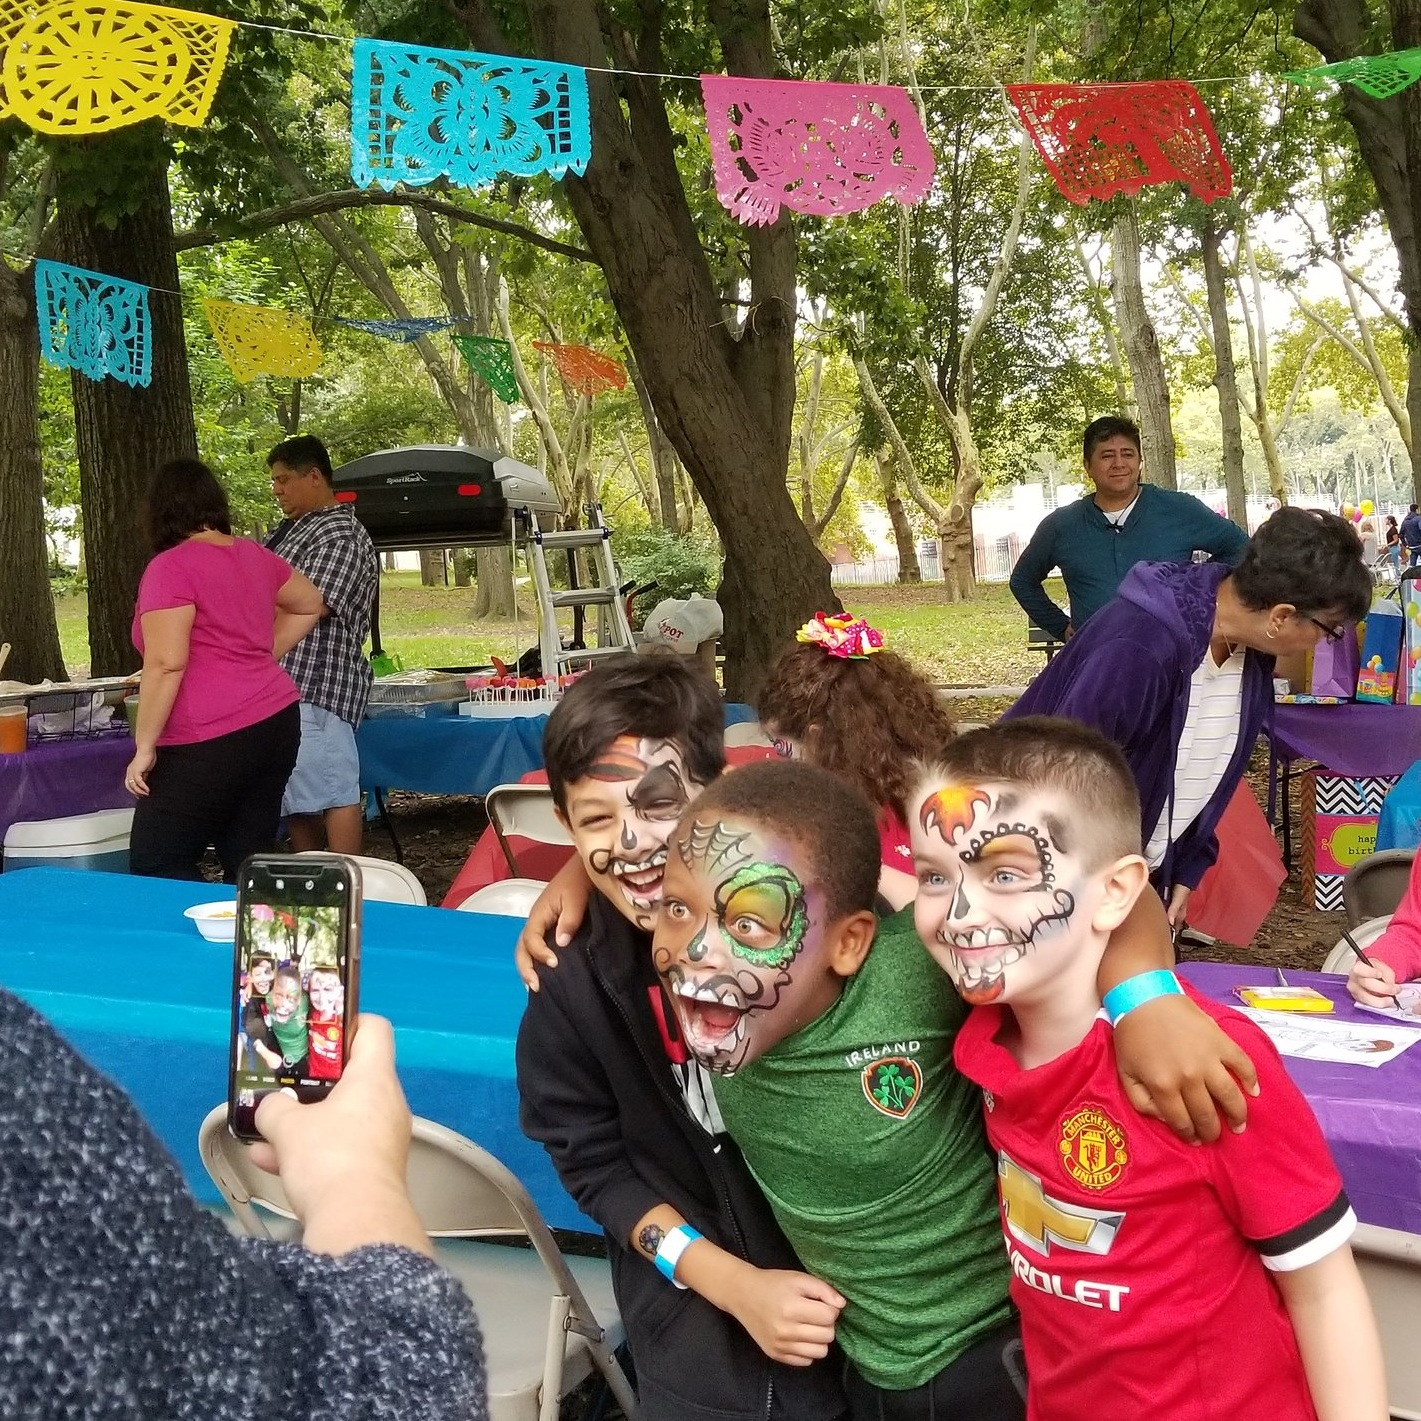 lenore-koppelman-the-cheeky-chipmunk-birthday-party-astoria-park-ny-nyc-queens-cocoa-sugar-skulls-mexican-mexico-day-of-the-dead-pixar-catarina-friends-little-boys-posting-for-photo.jpg